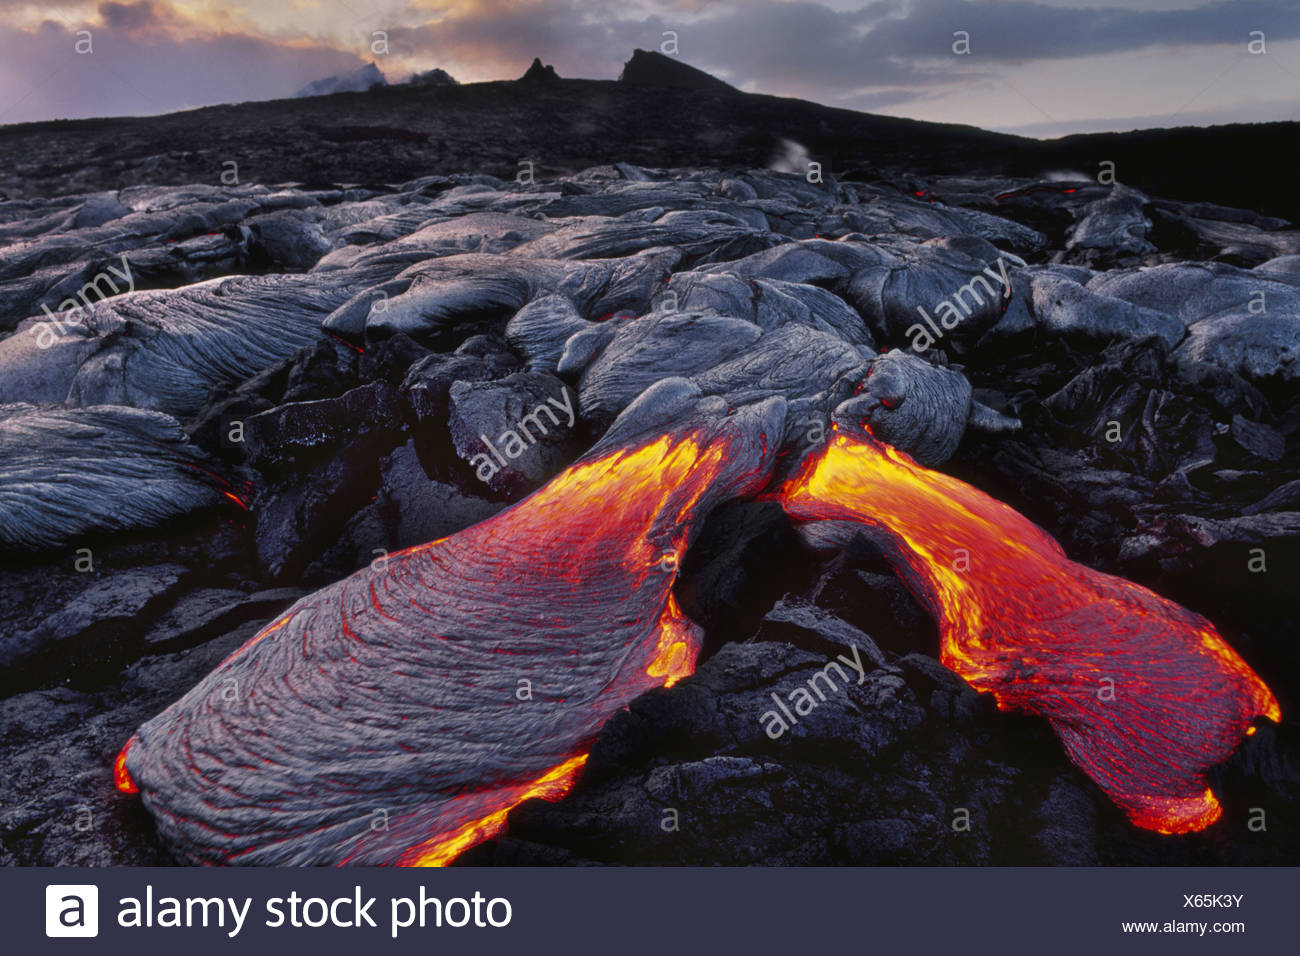 Flowing lava Hawaii Volcanoes National Park Hawaii Hawaii Volcanoes National Park Hawaii - Stock Image